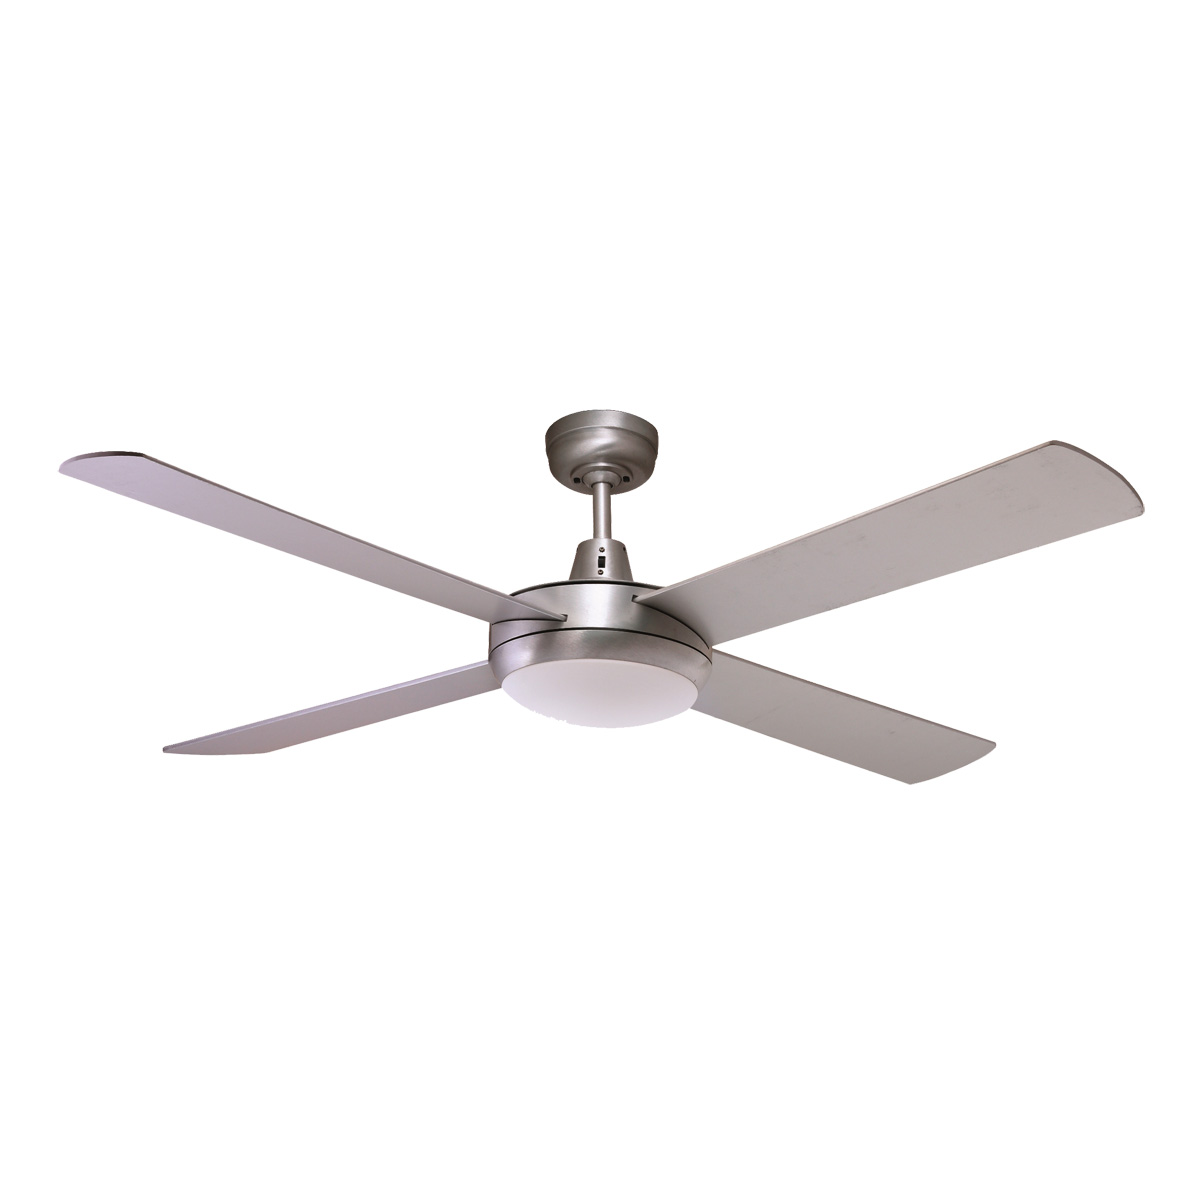 company anslee low ceiling light amazon fan hunter canada fans silver profile with dp matte